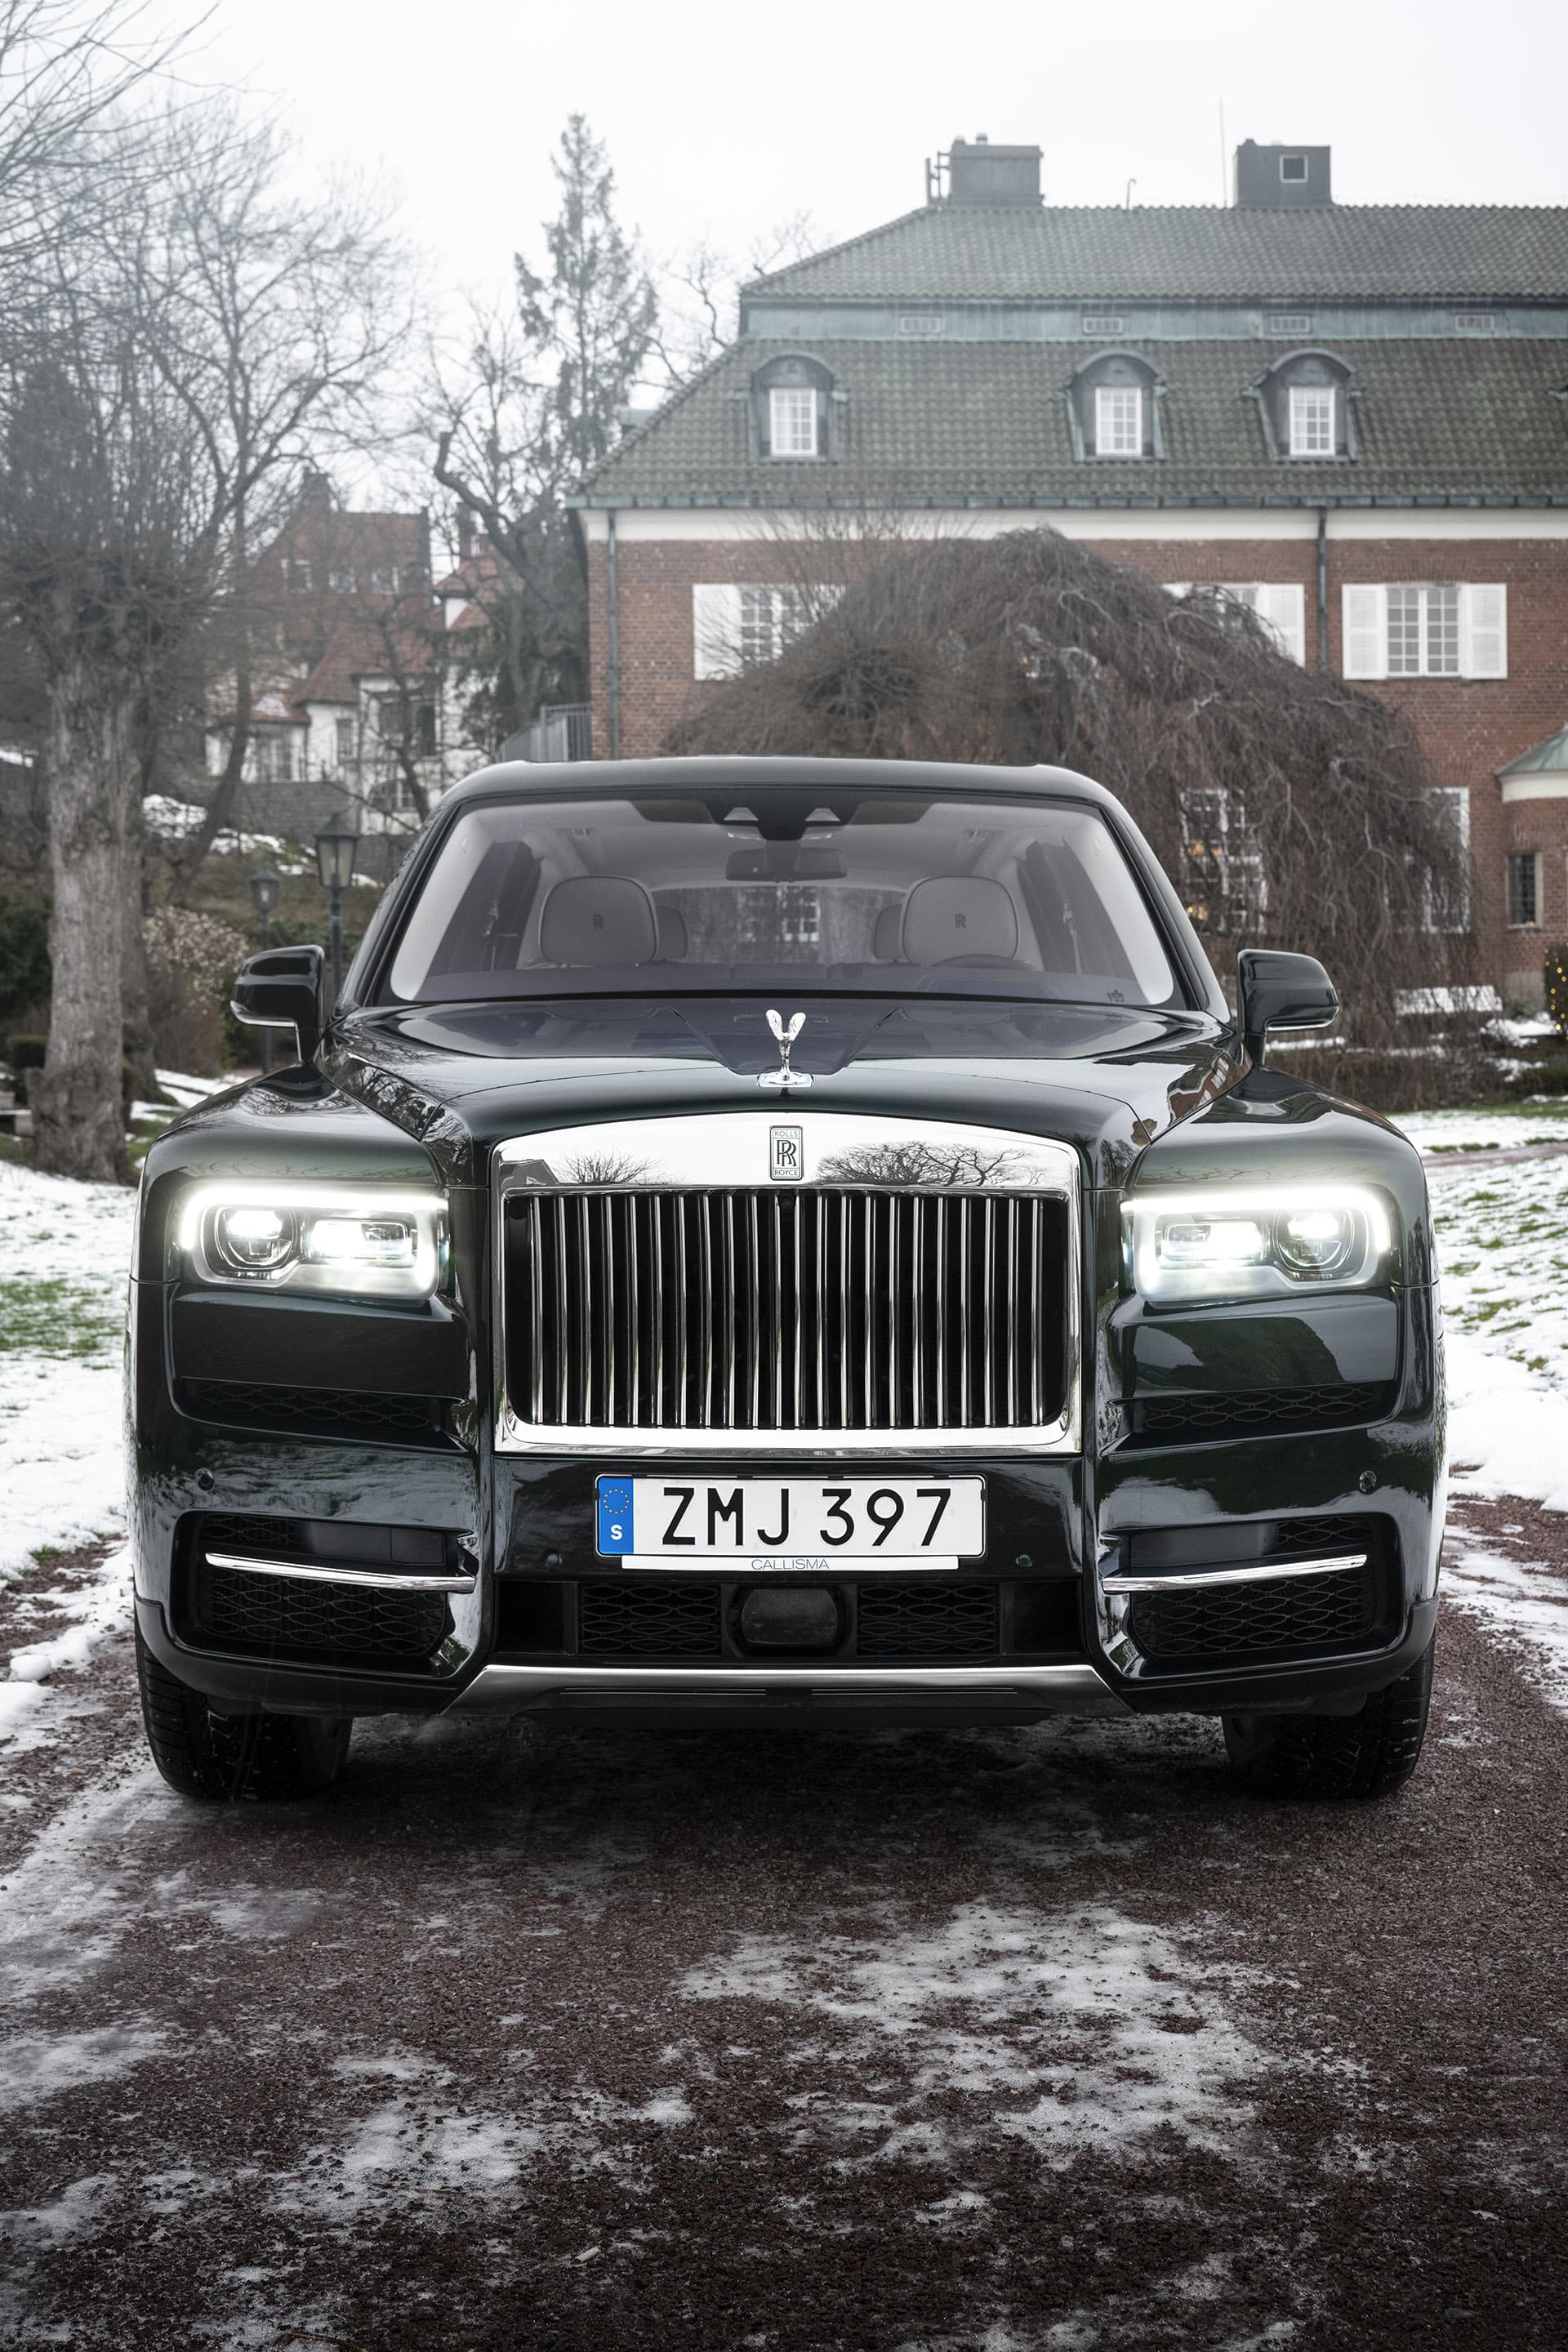 The front of the Cullinan is just like the rest of the car – strong and powerful. Few, if any other cars reach the level of luxury that the Cullinan does.